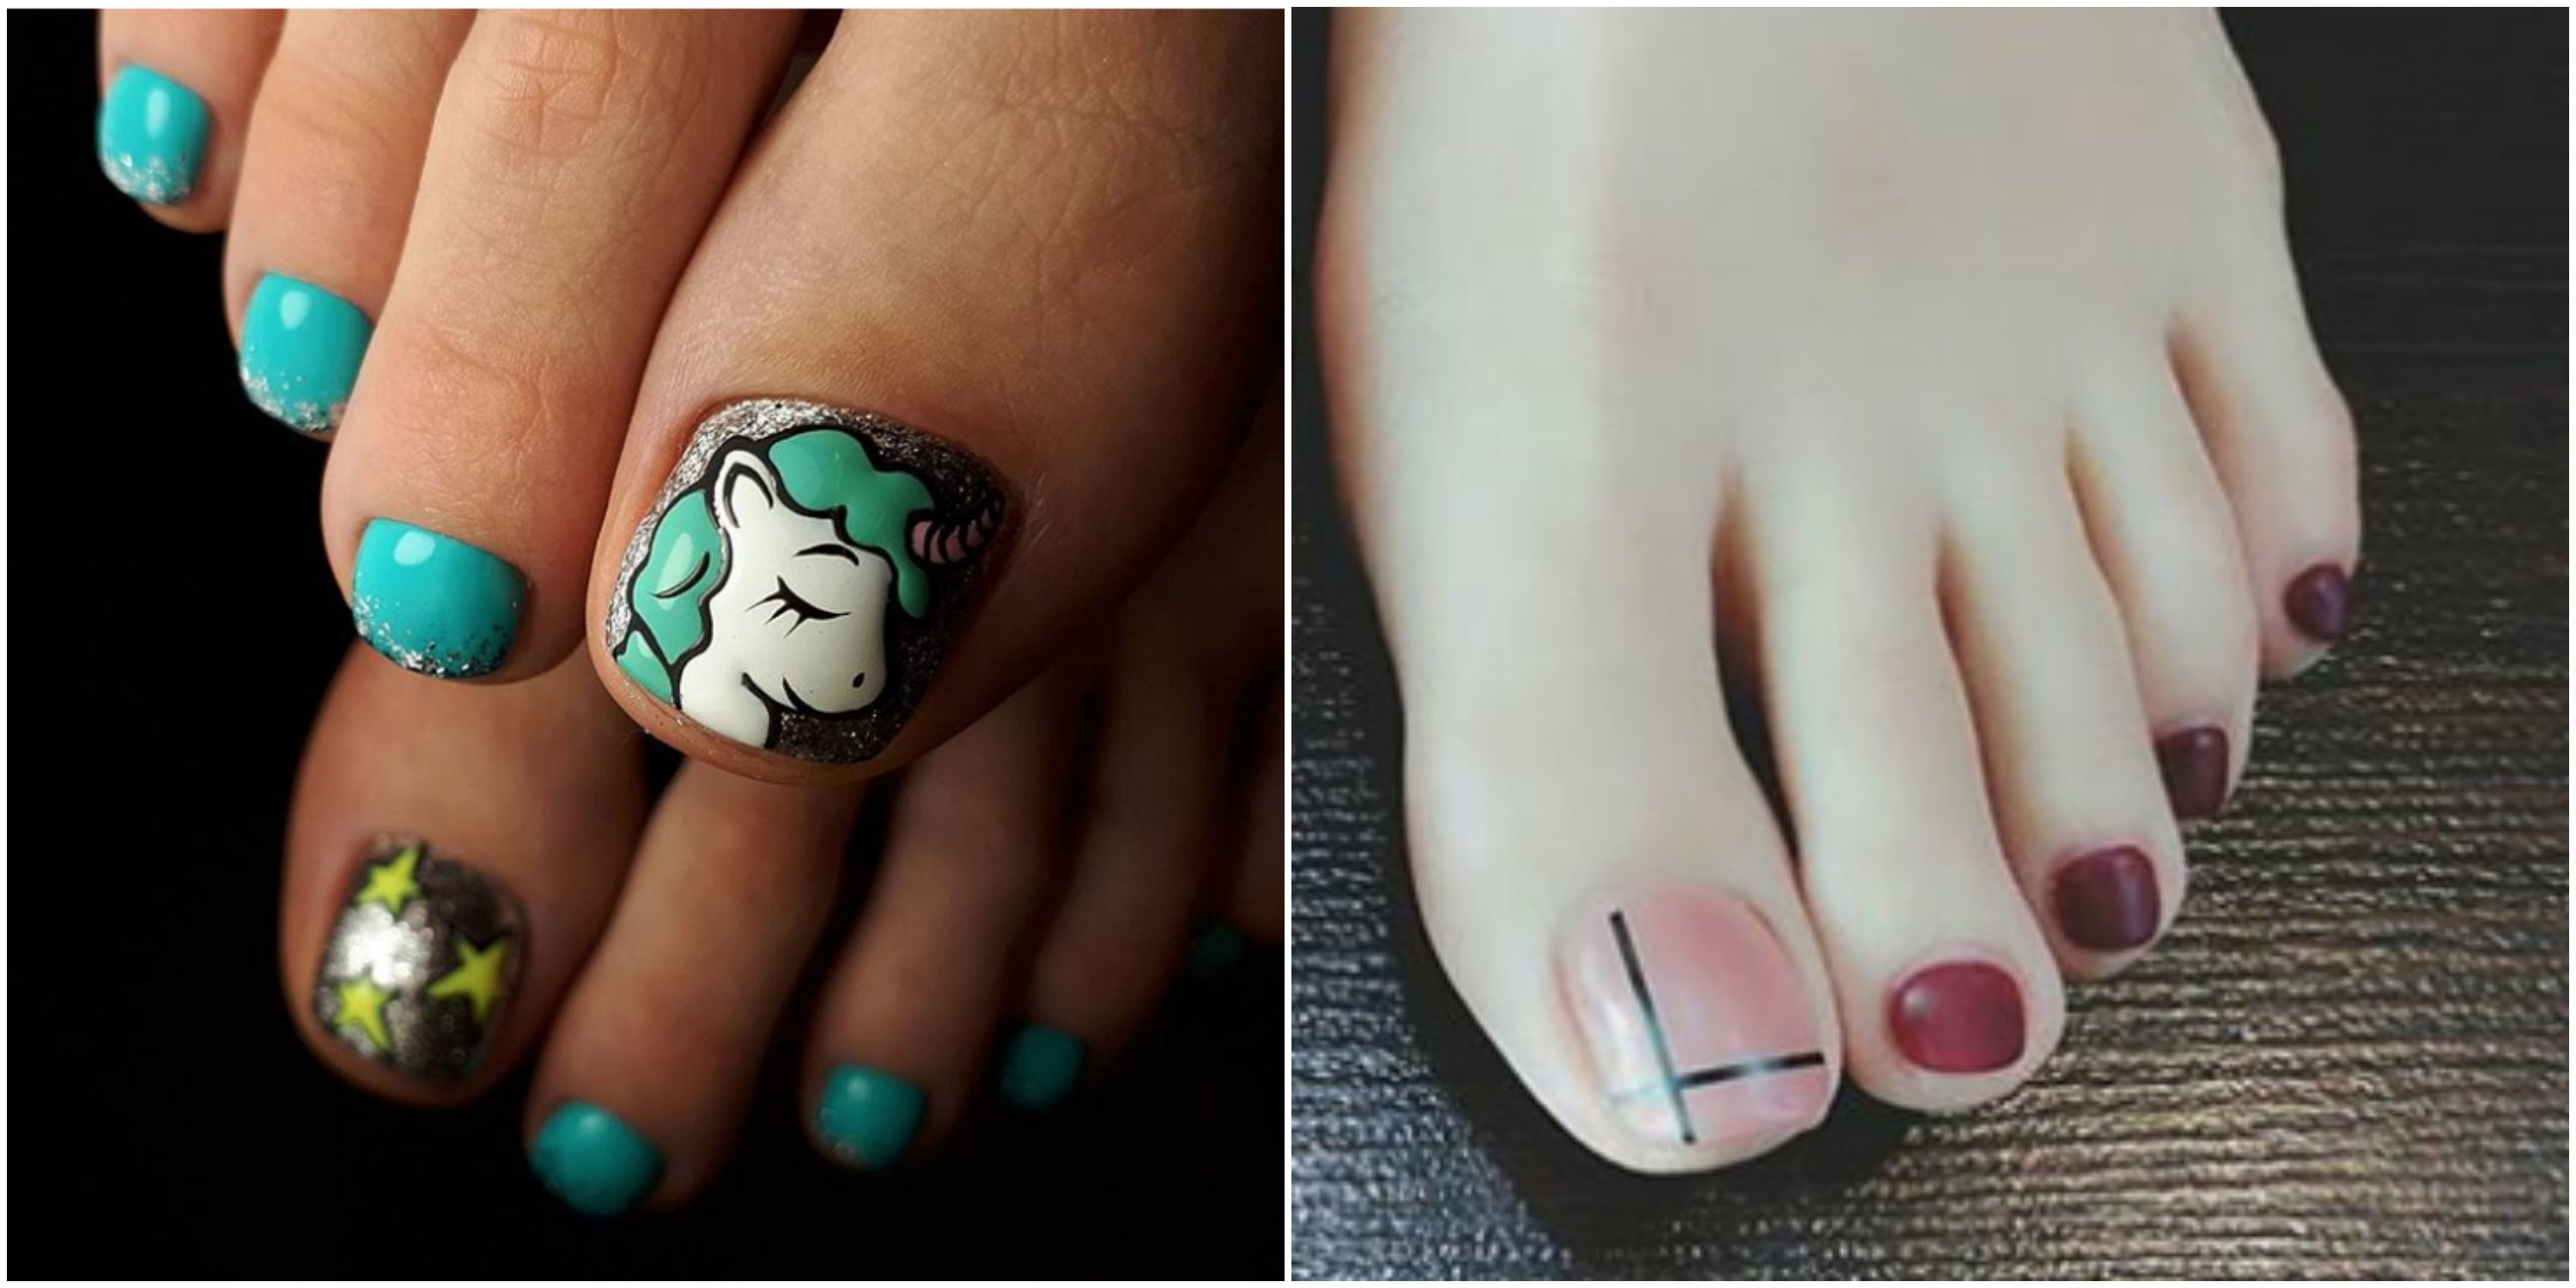 12 Cute Toe Nail Art Designs 2018 - Best Toenail Polish Ideas